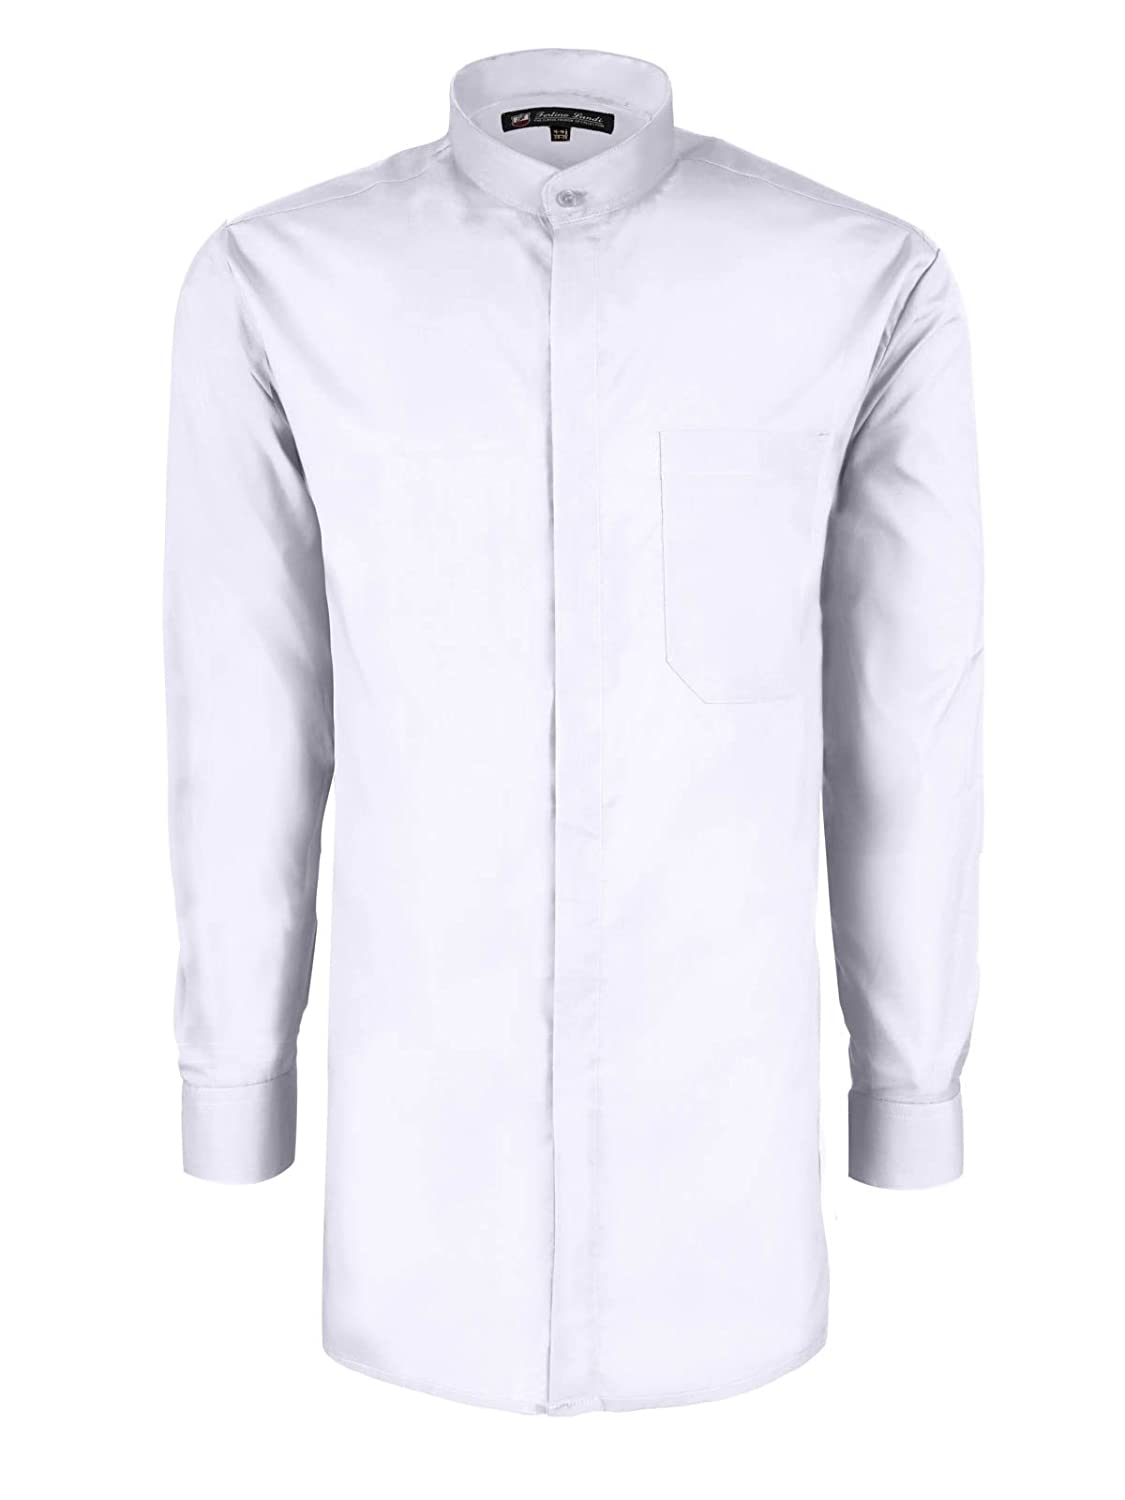 1920s Men's Dress Shirts, Casual Shirts  Long-sleeve Banded Collar Shirt - Many Colors Available $20.95 AT vintagedancer.com